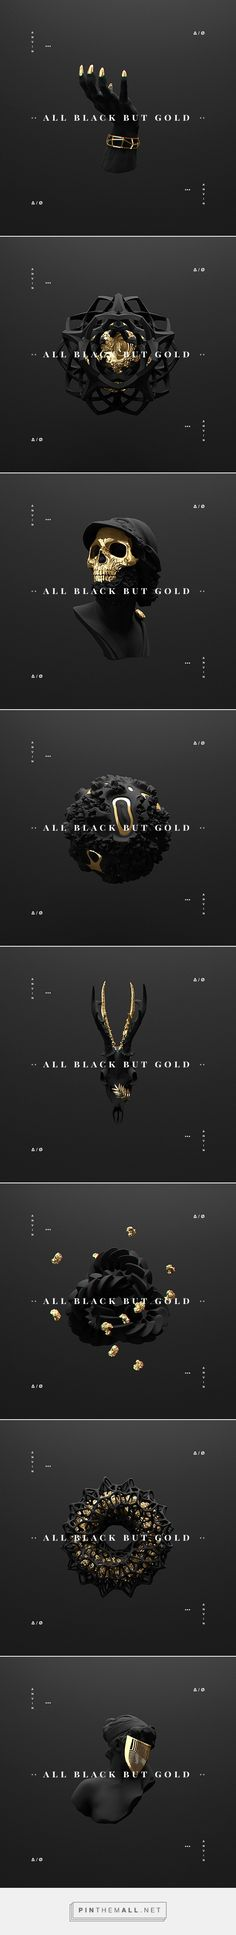 All black but gold on Behance - created via http://pinthemall.net